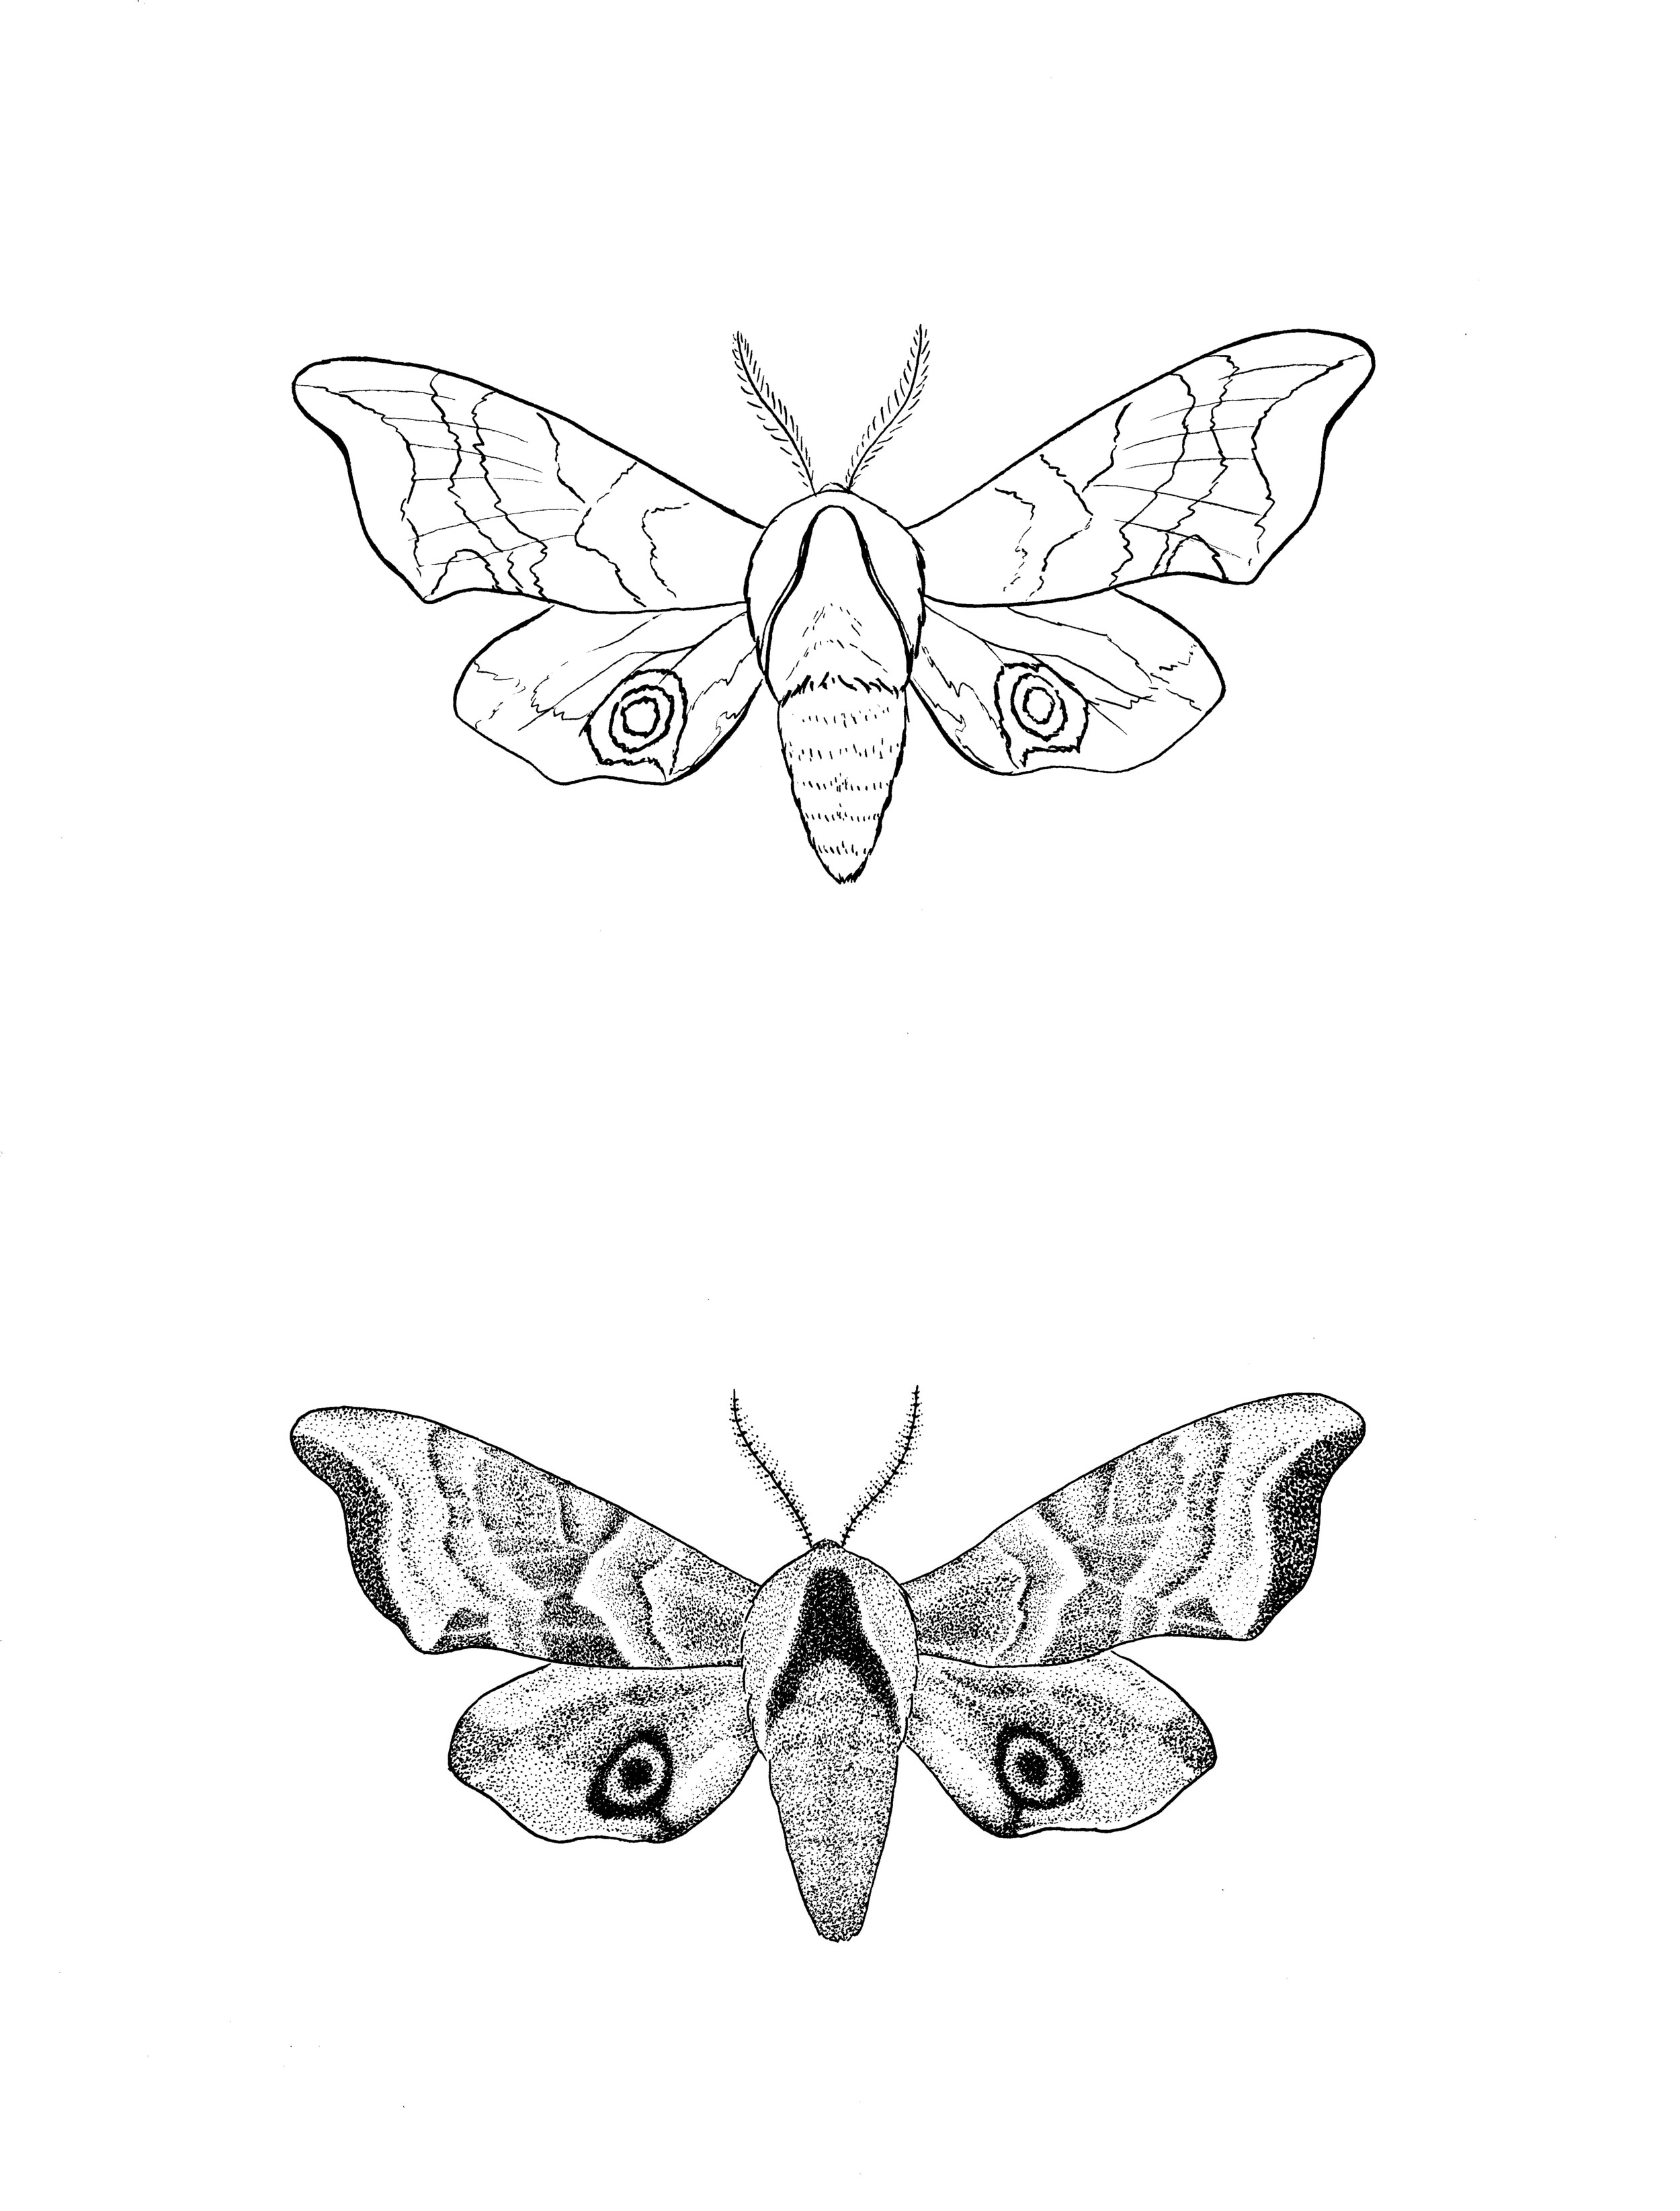 moths1 crop jpeg.jpg